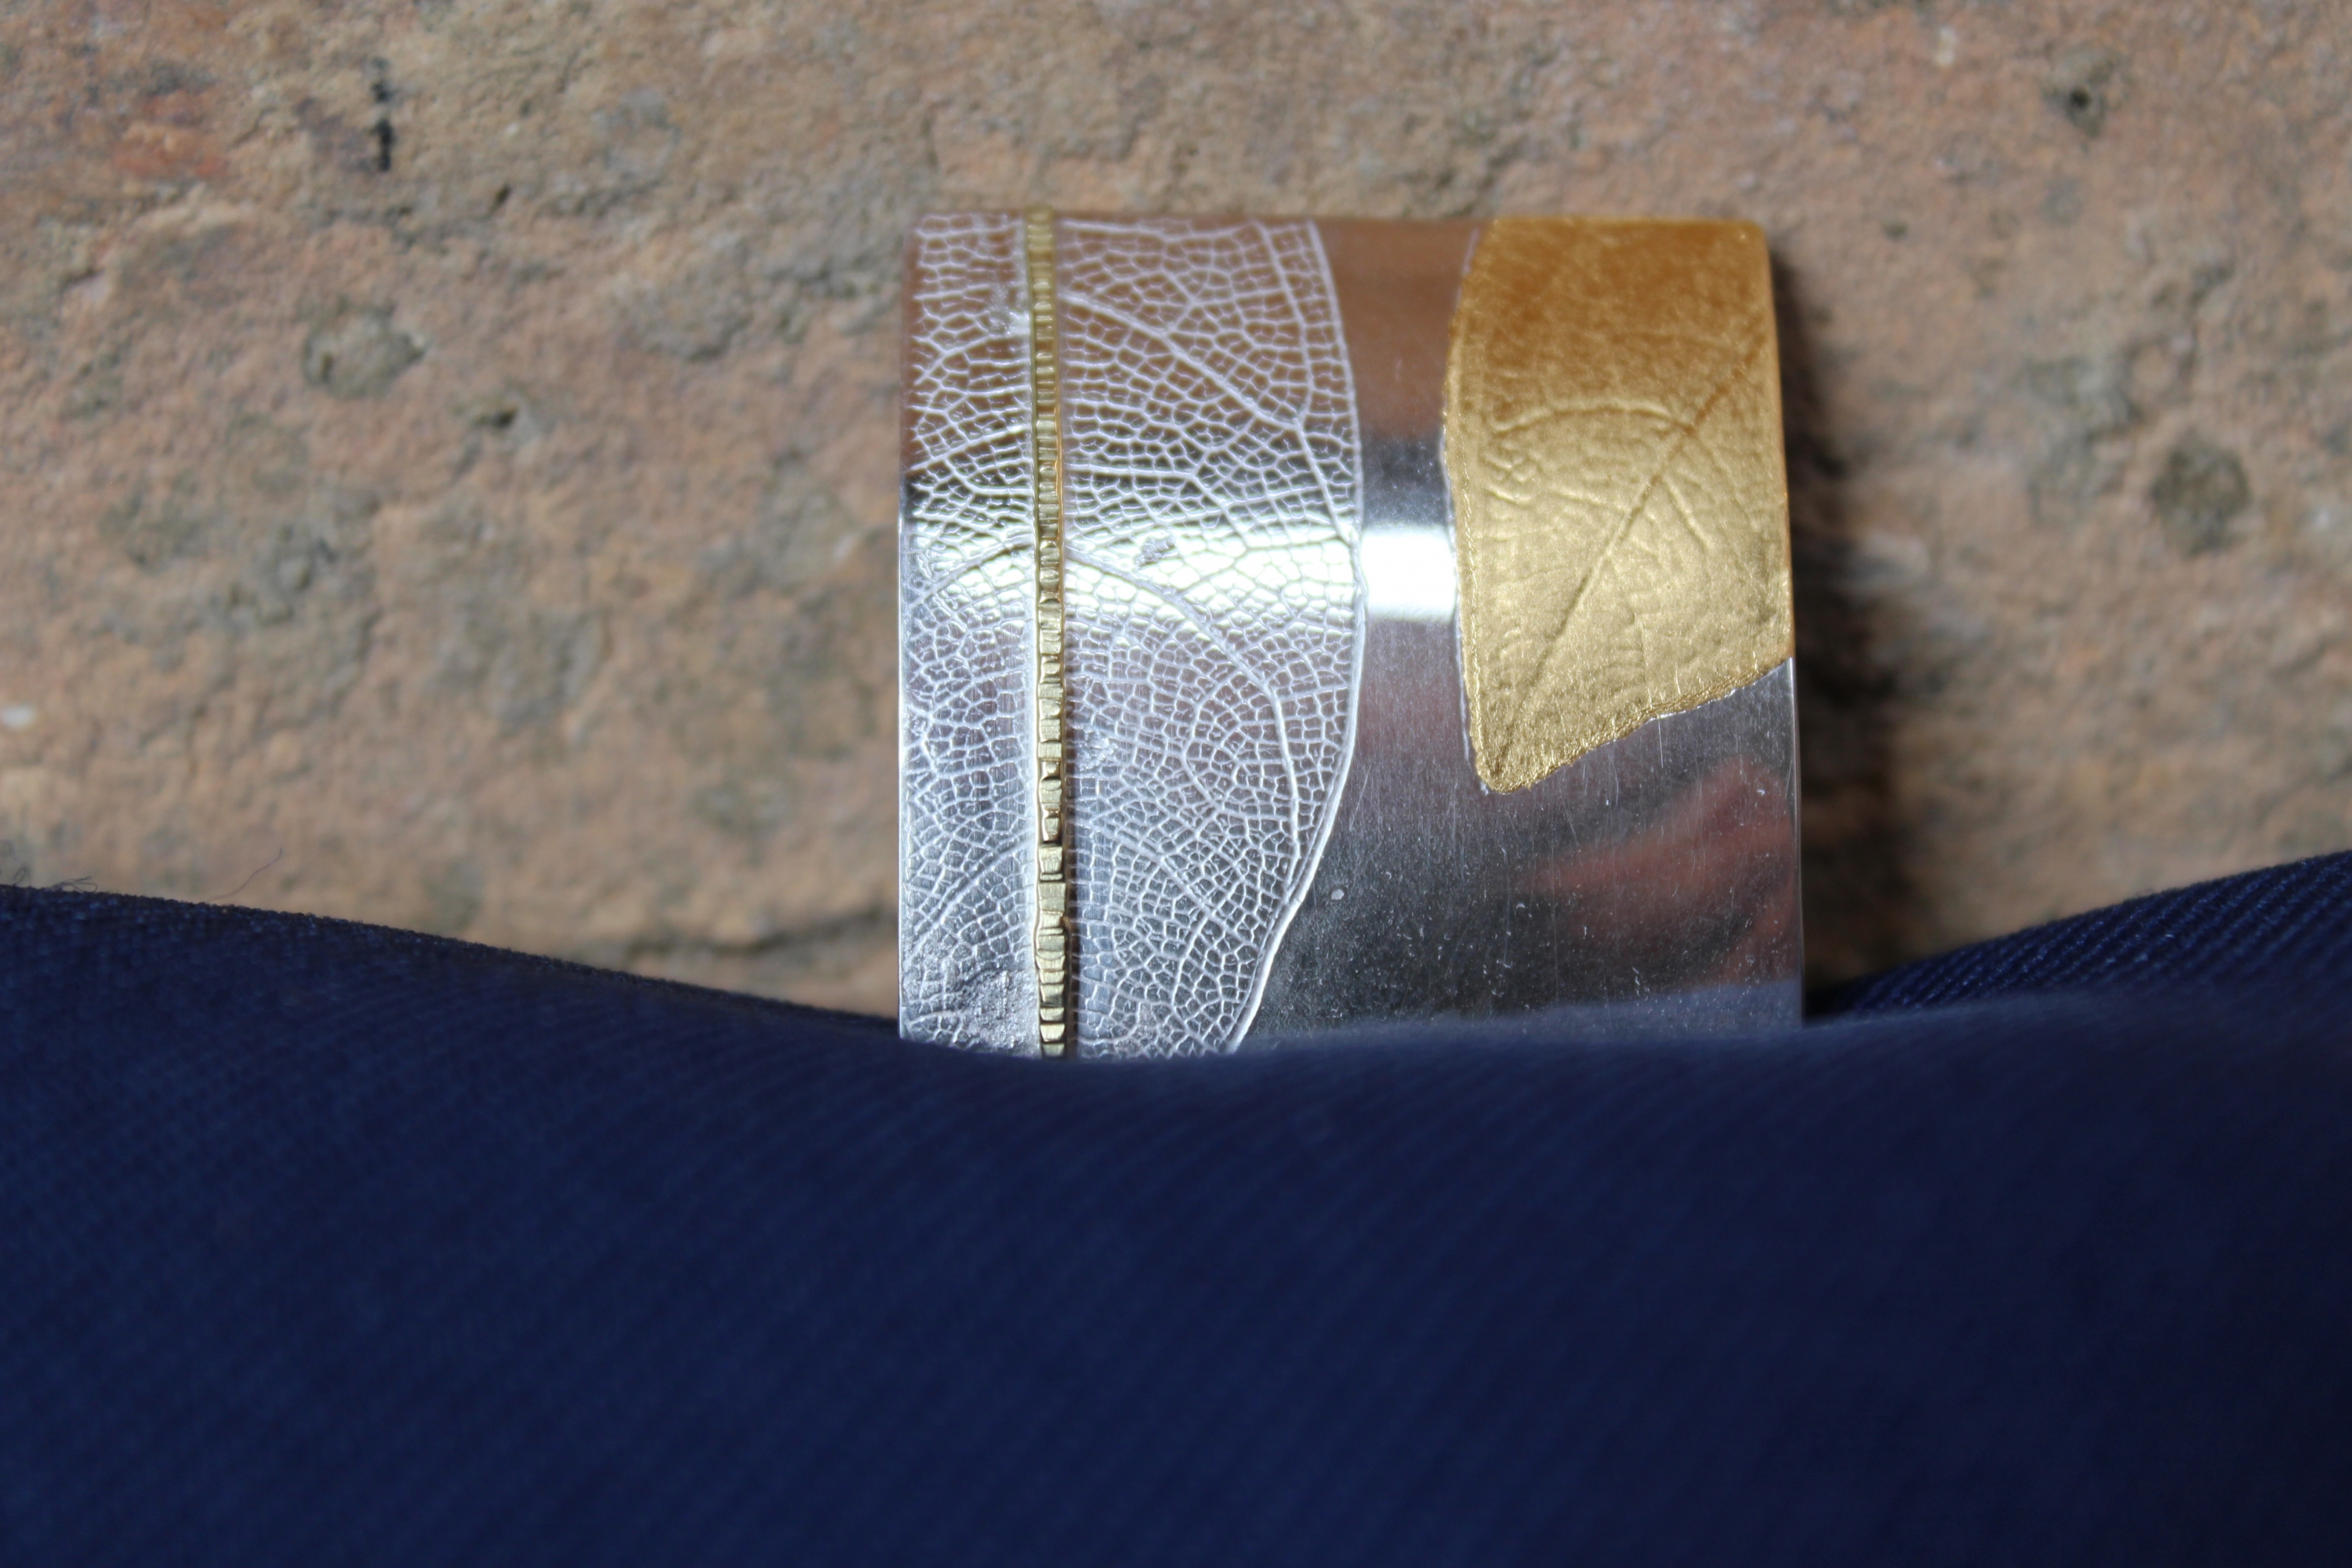 Leaf imprint brooch Jewellery & Silversmithing courses at Cambridge Art Makers